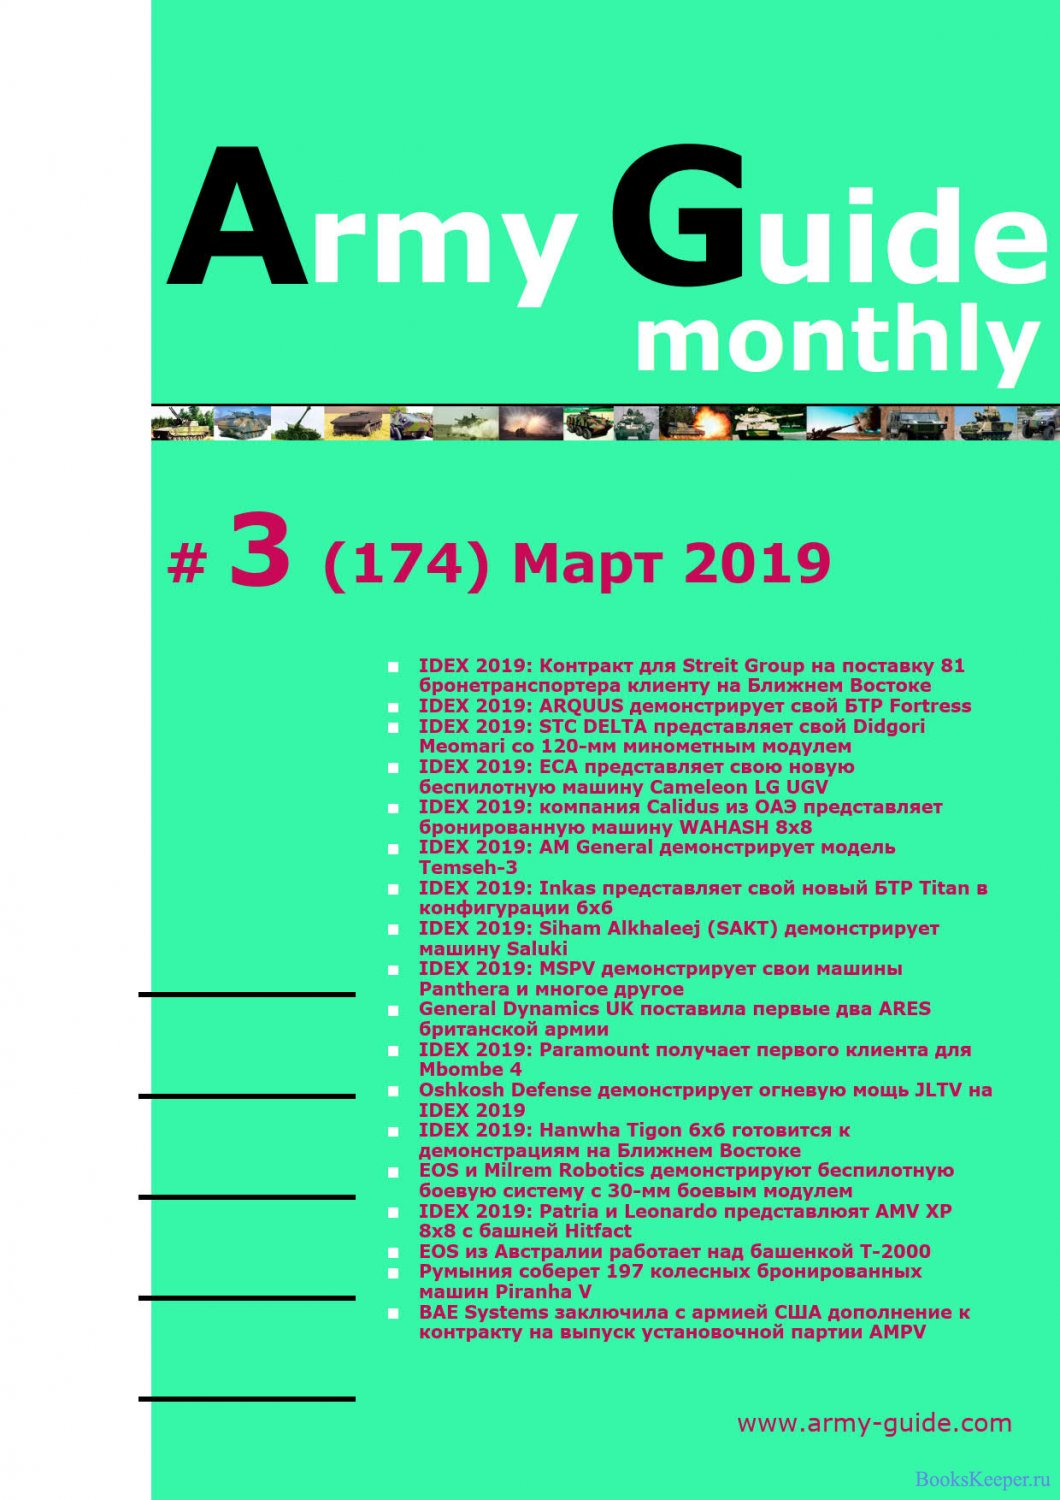 Army Guide monthly №3 (март 2019)